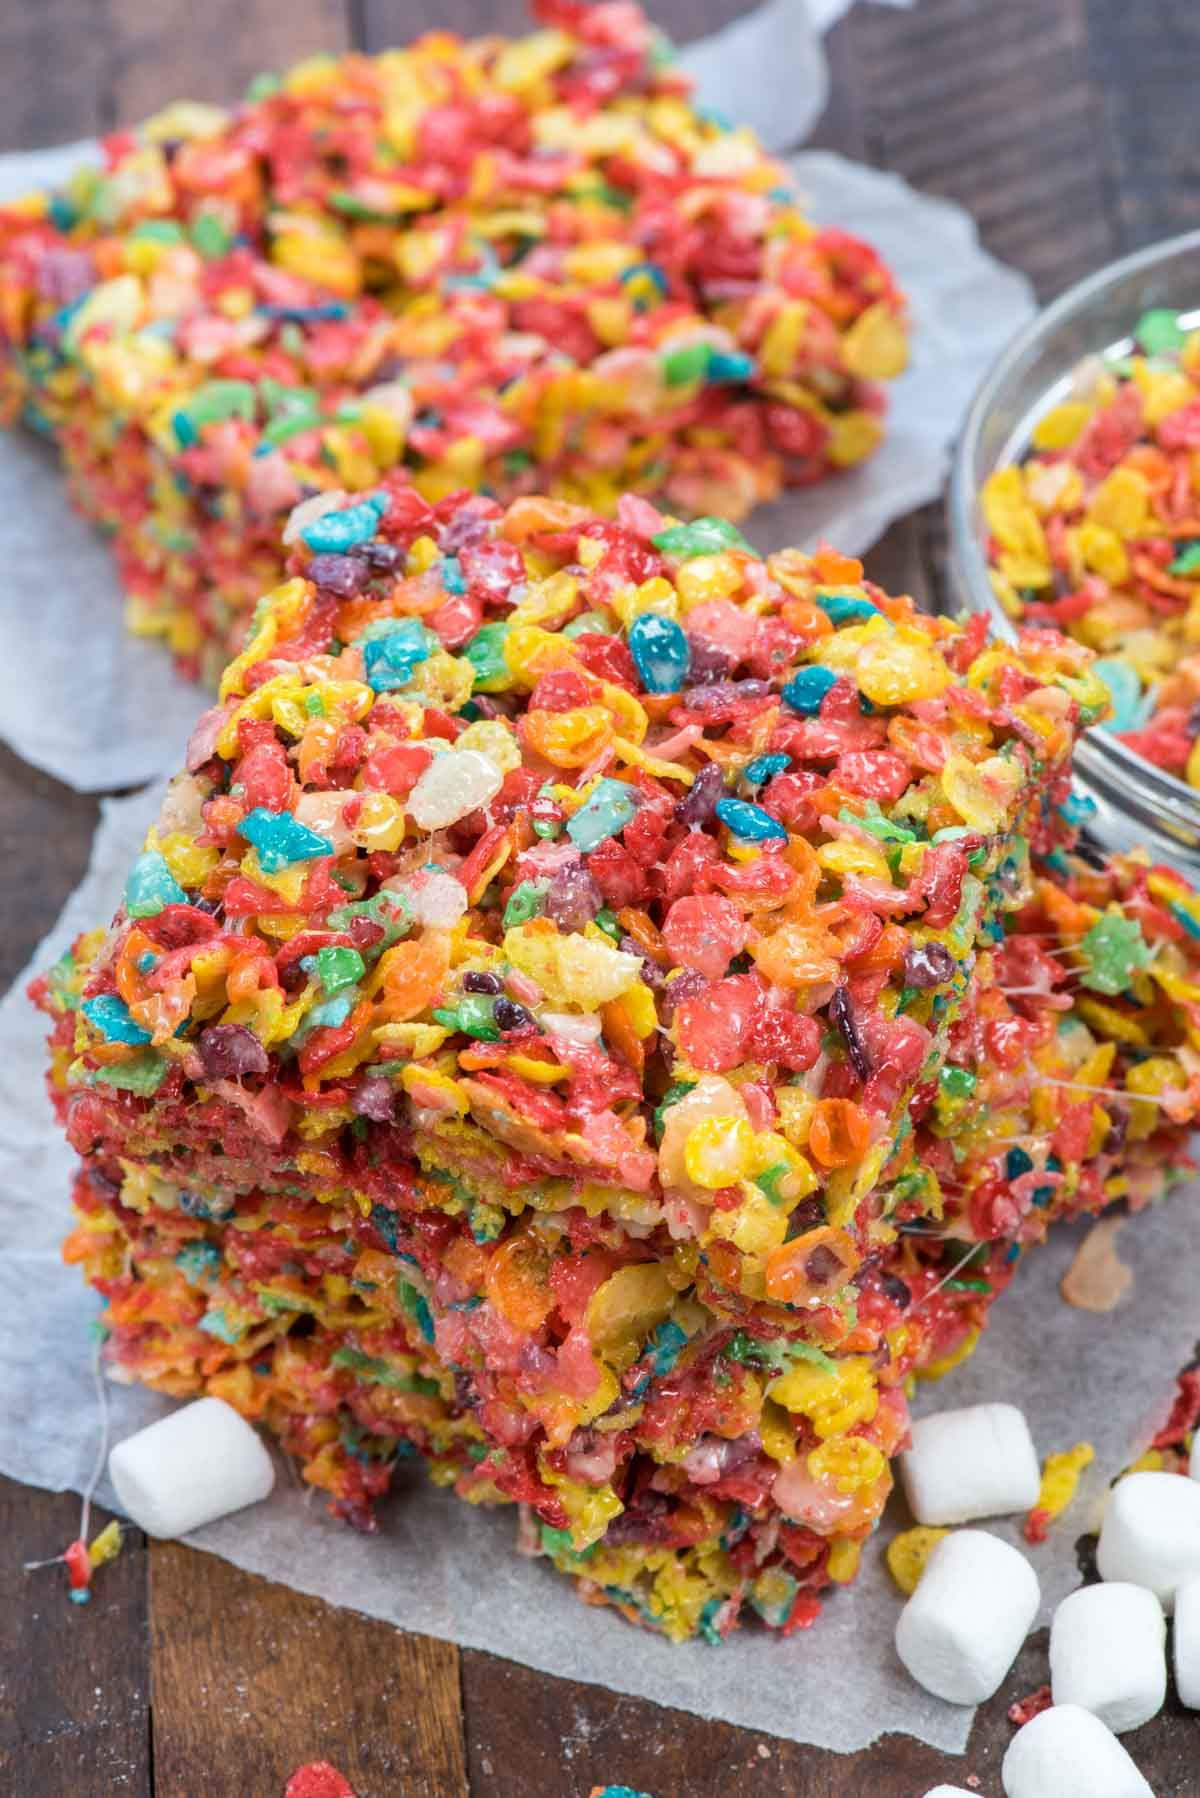 The Perfect Fruity Pebble Krispie Treat Recipe Is The Best Rainbow Marshmallow Cereal Treat Fruity Pebbles Treats Cereal Treats Krispie Treats Recipe